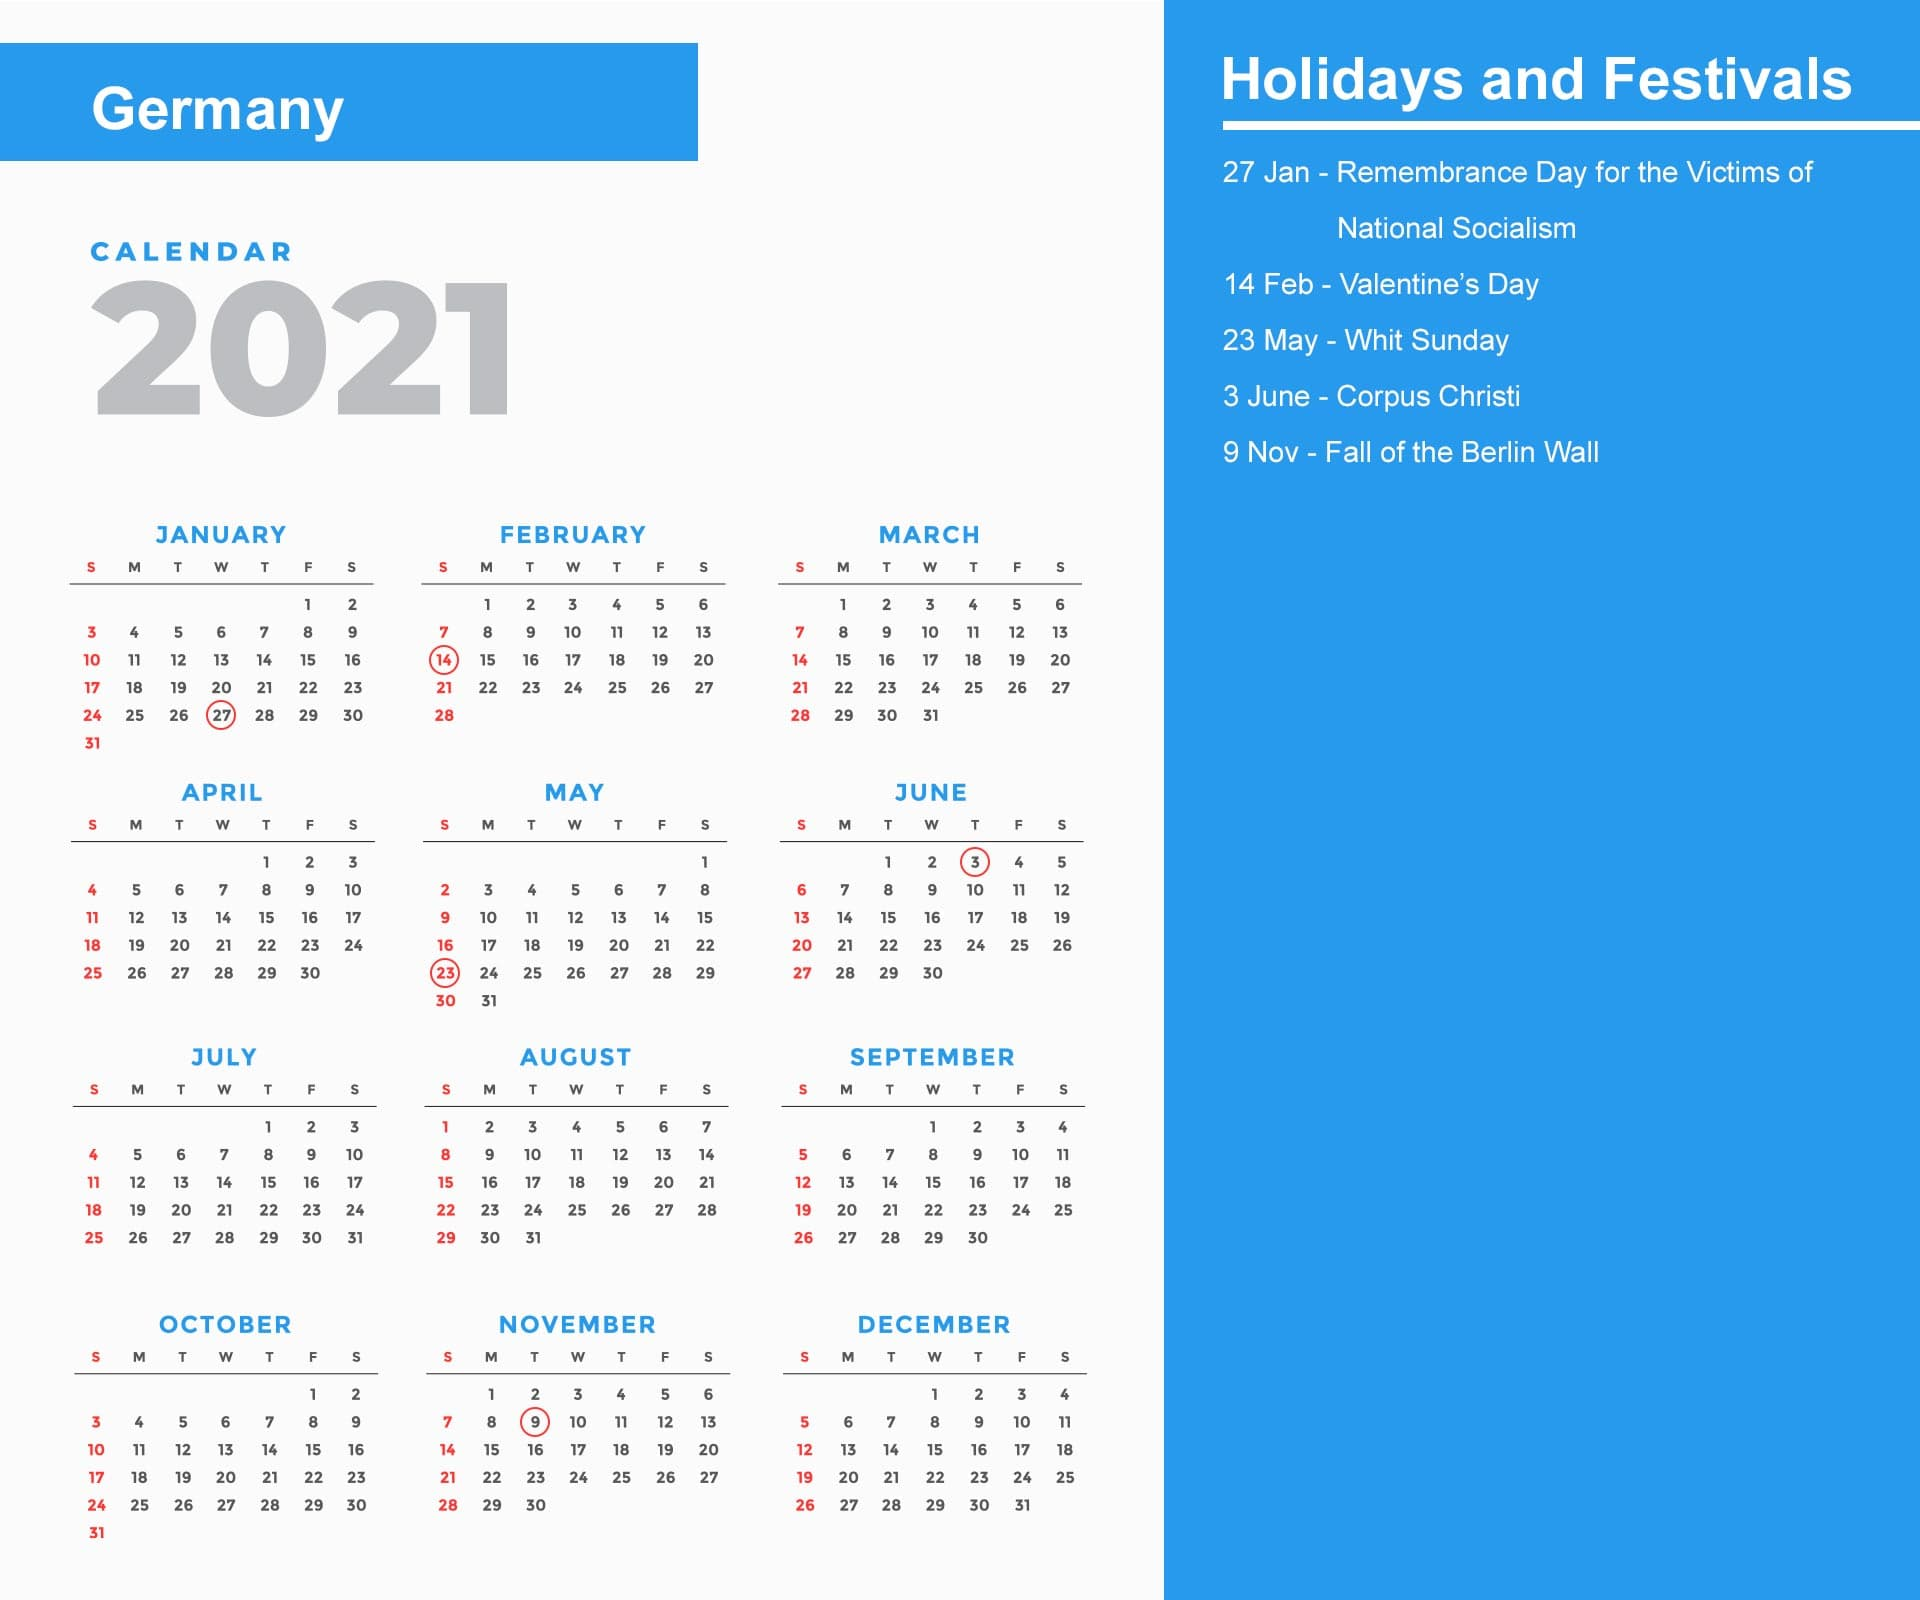 Germany Holidays Calendar 2021